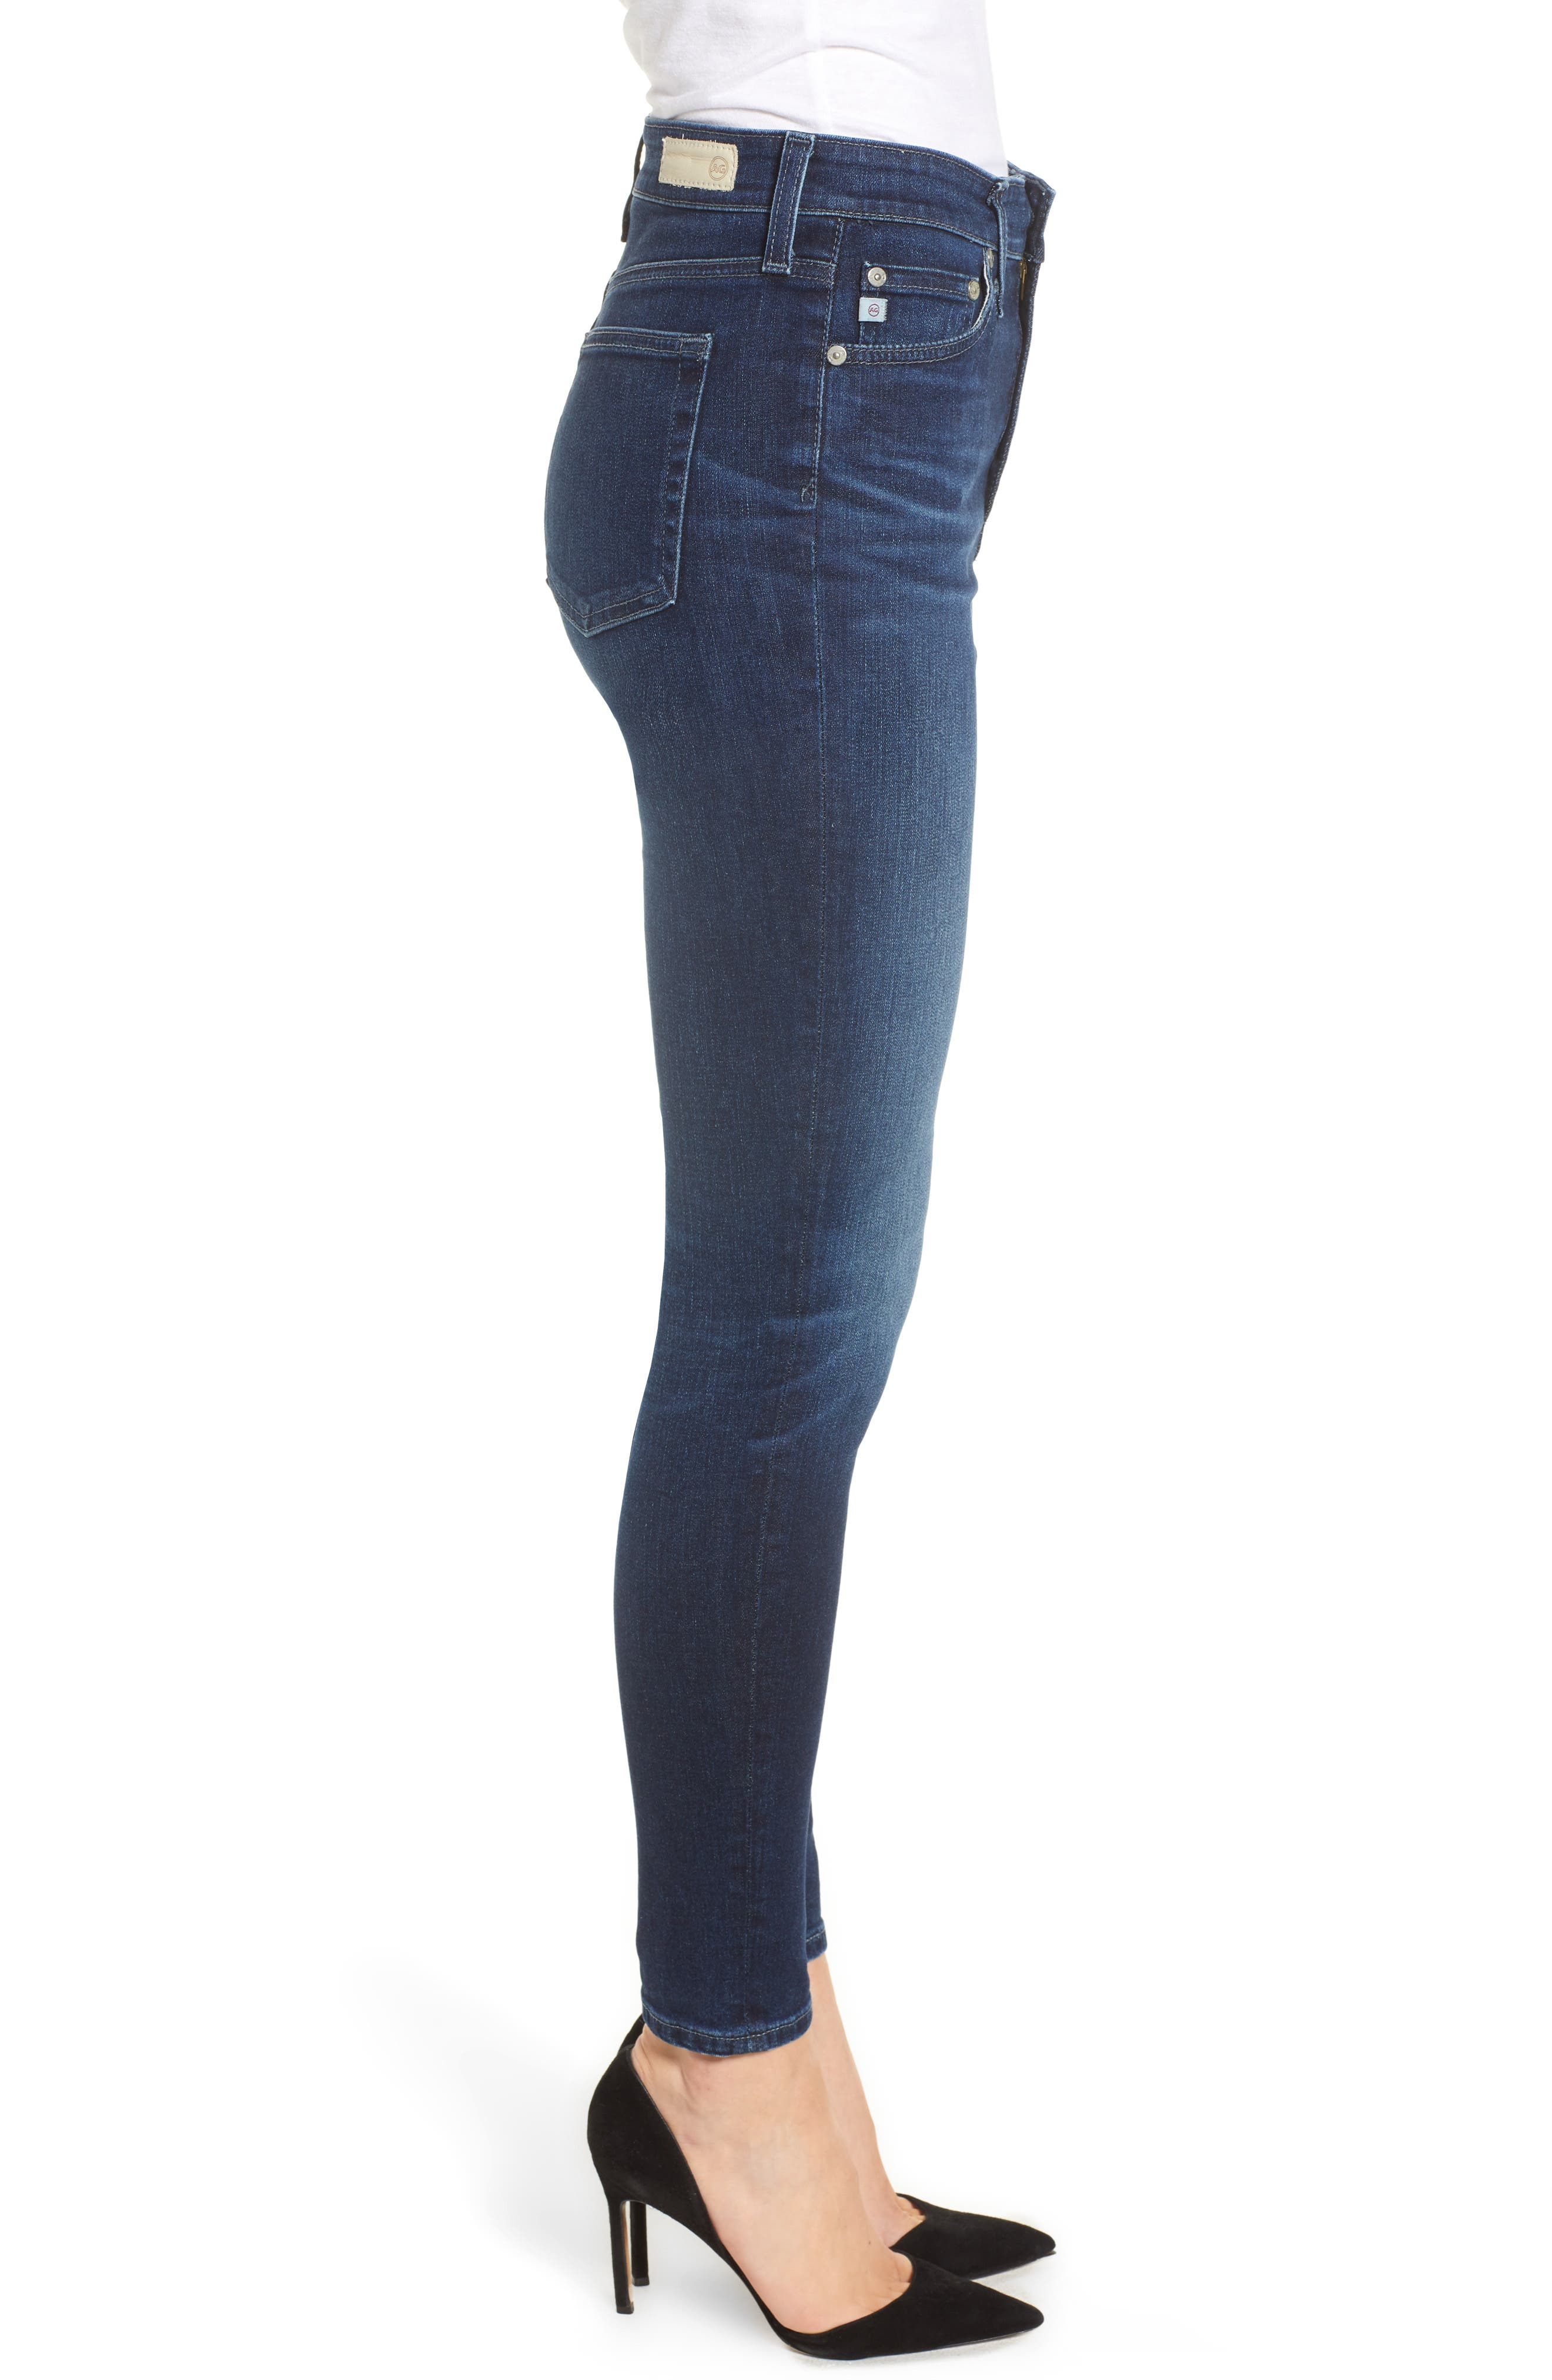 Mila Ankle Skinny Jeans,                             Alternate thumbnail 3, color,                             4 Years Deep Willows